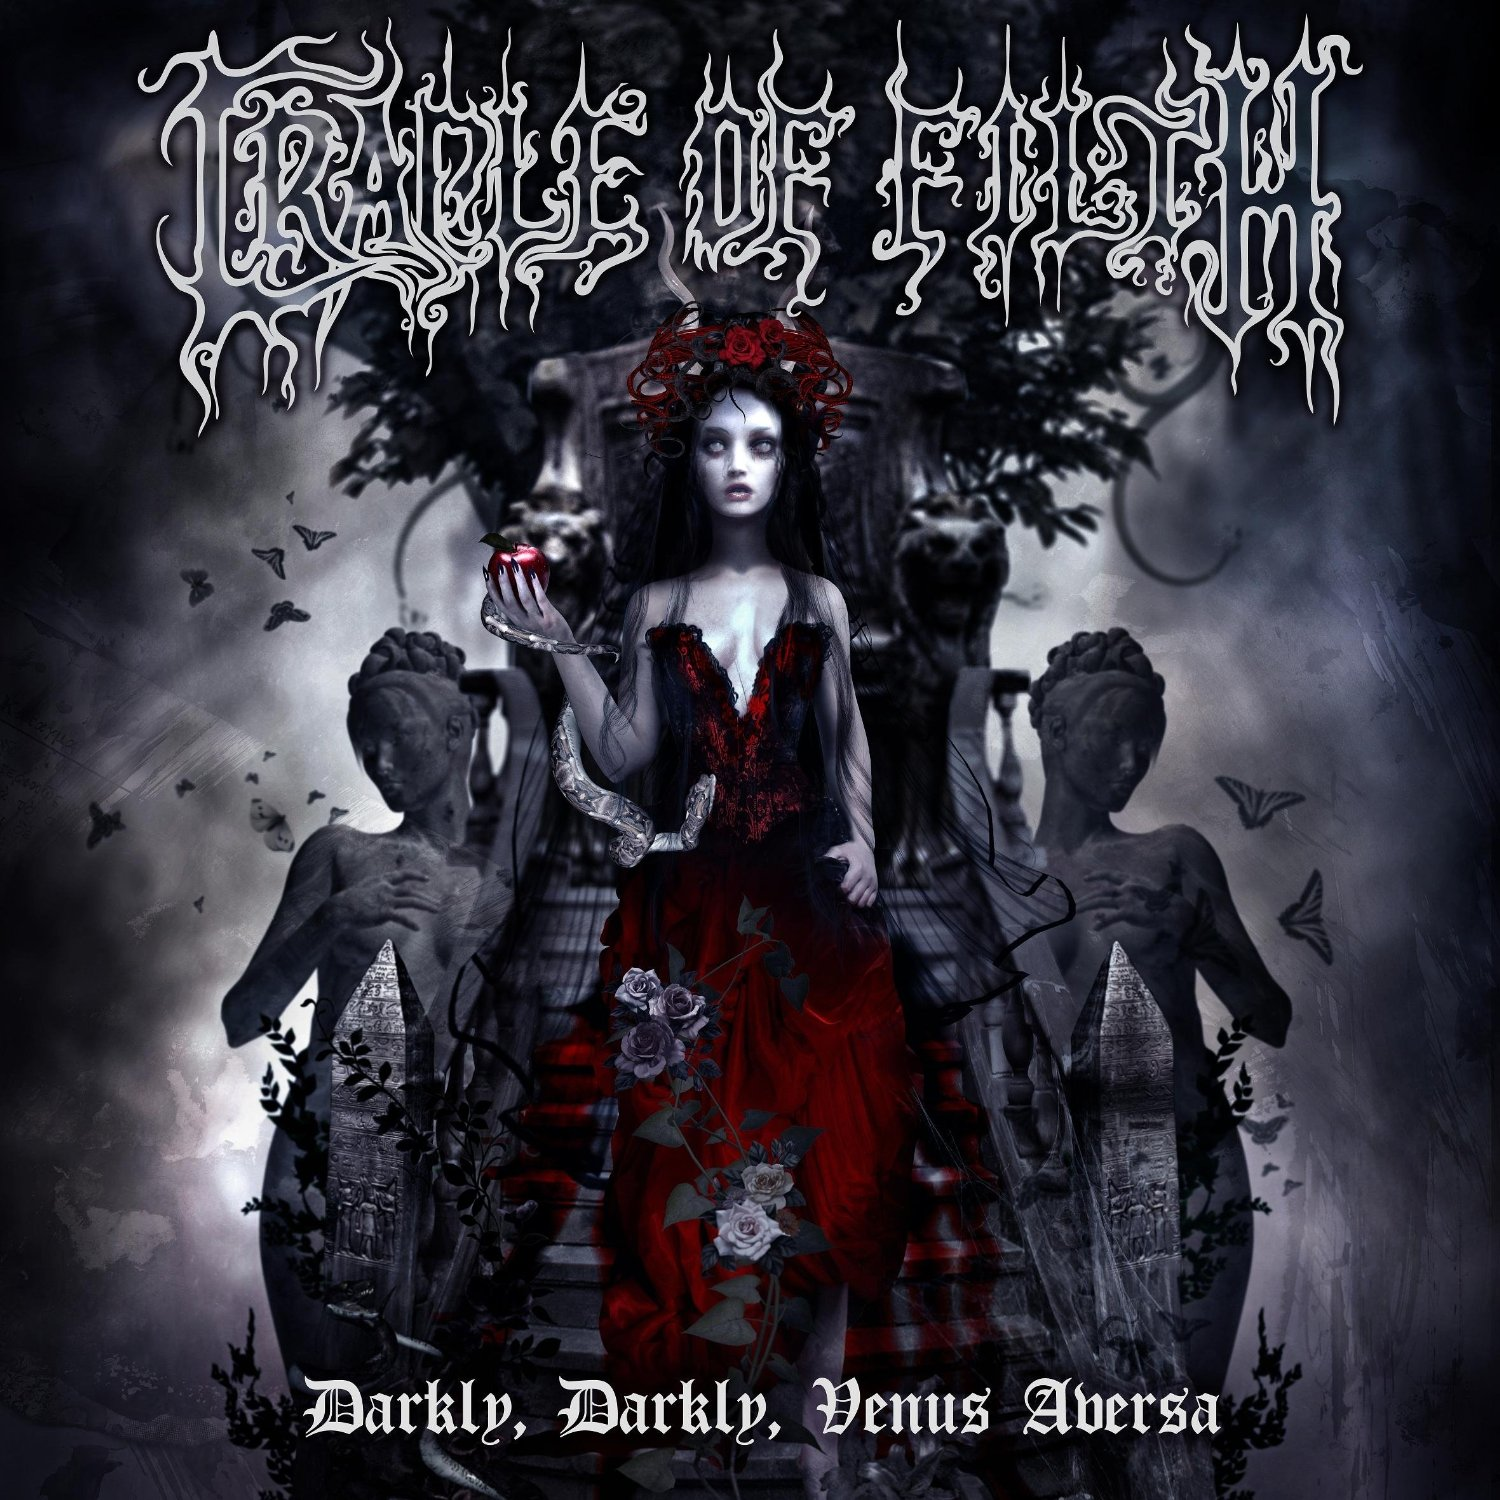 cover_Cradle-Of-Filth-Darkly-Darkly-Venus-Aversa